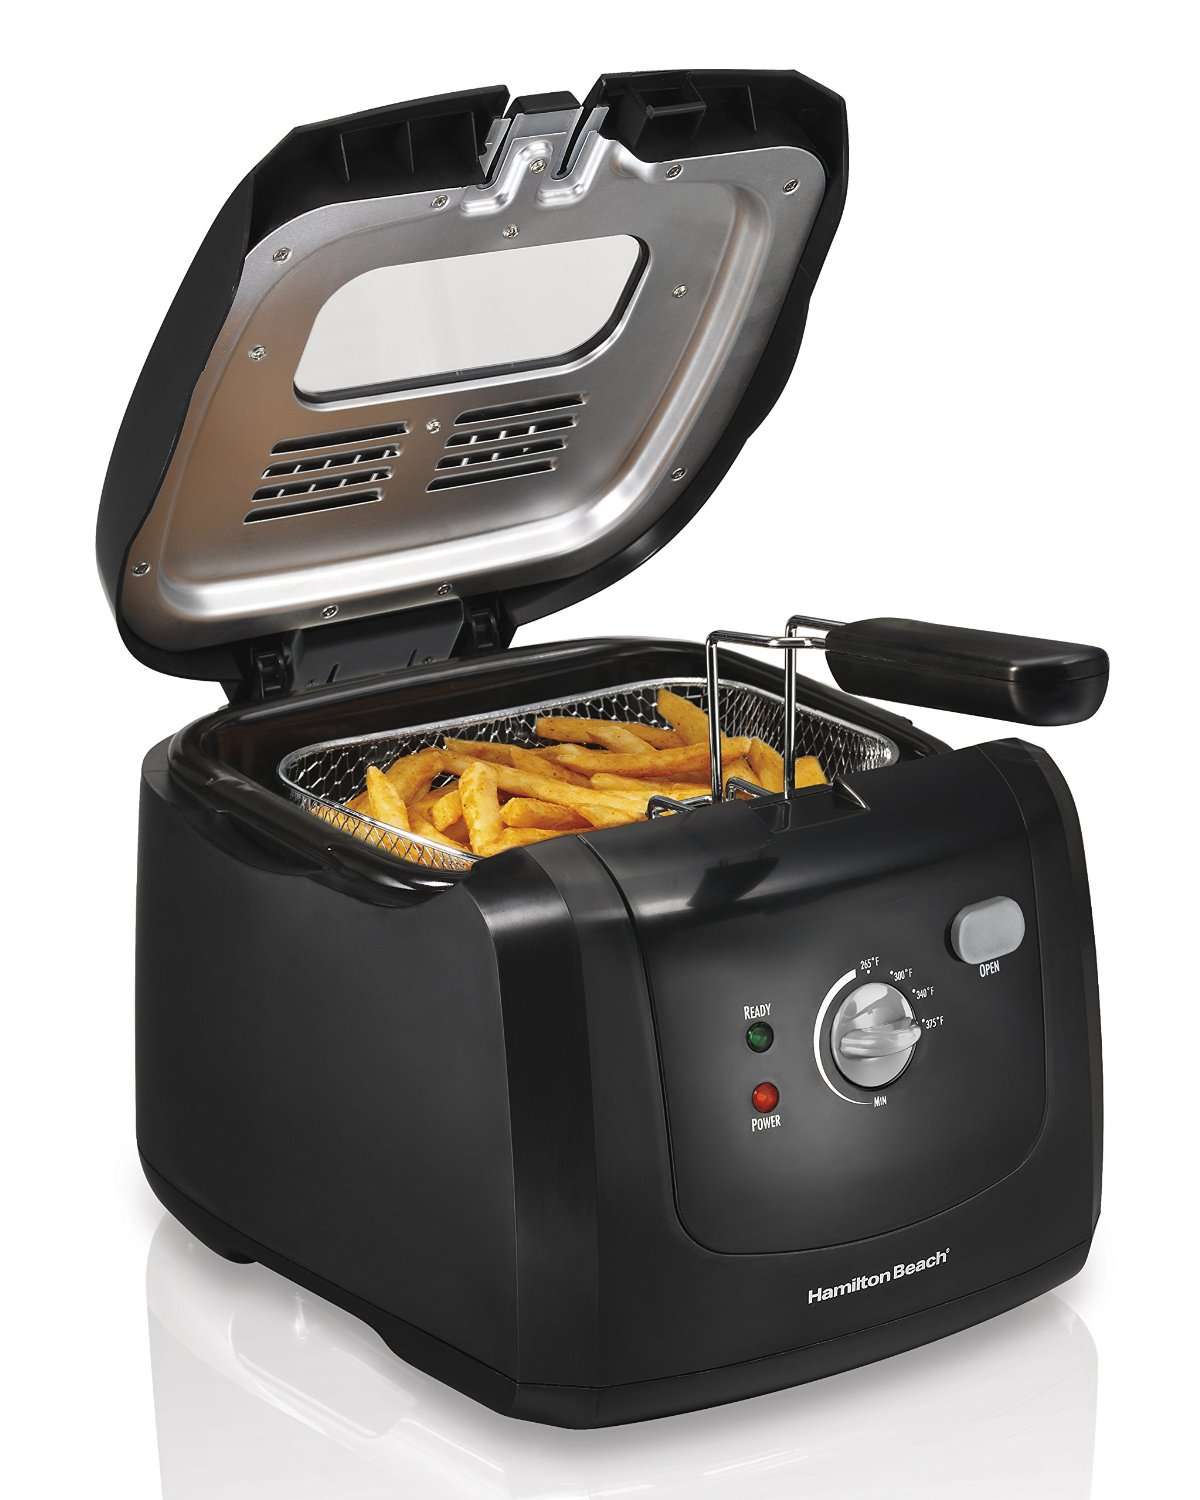 Are at Home Deep Fryers Safe?